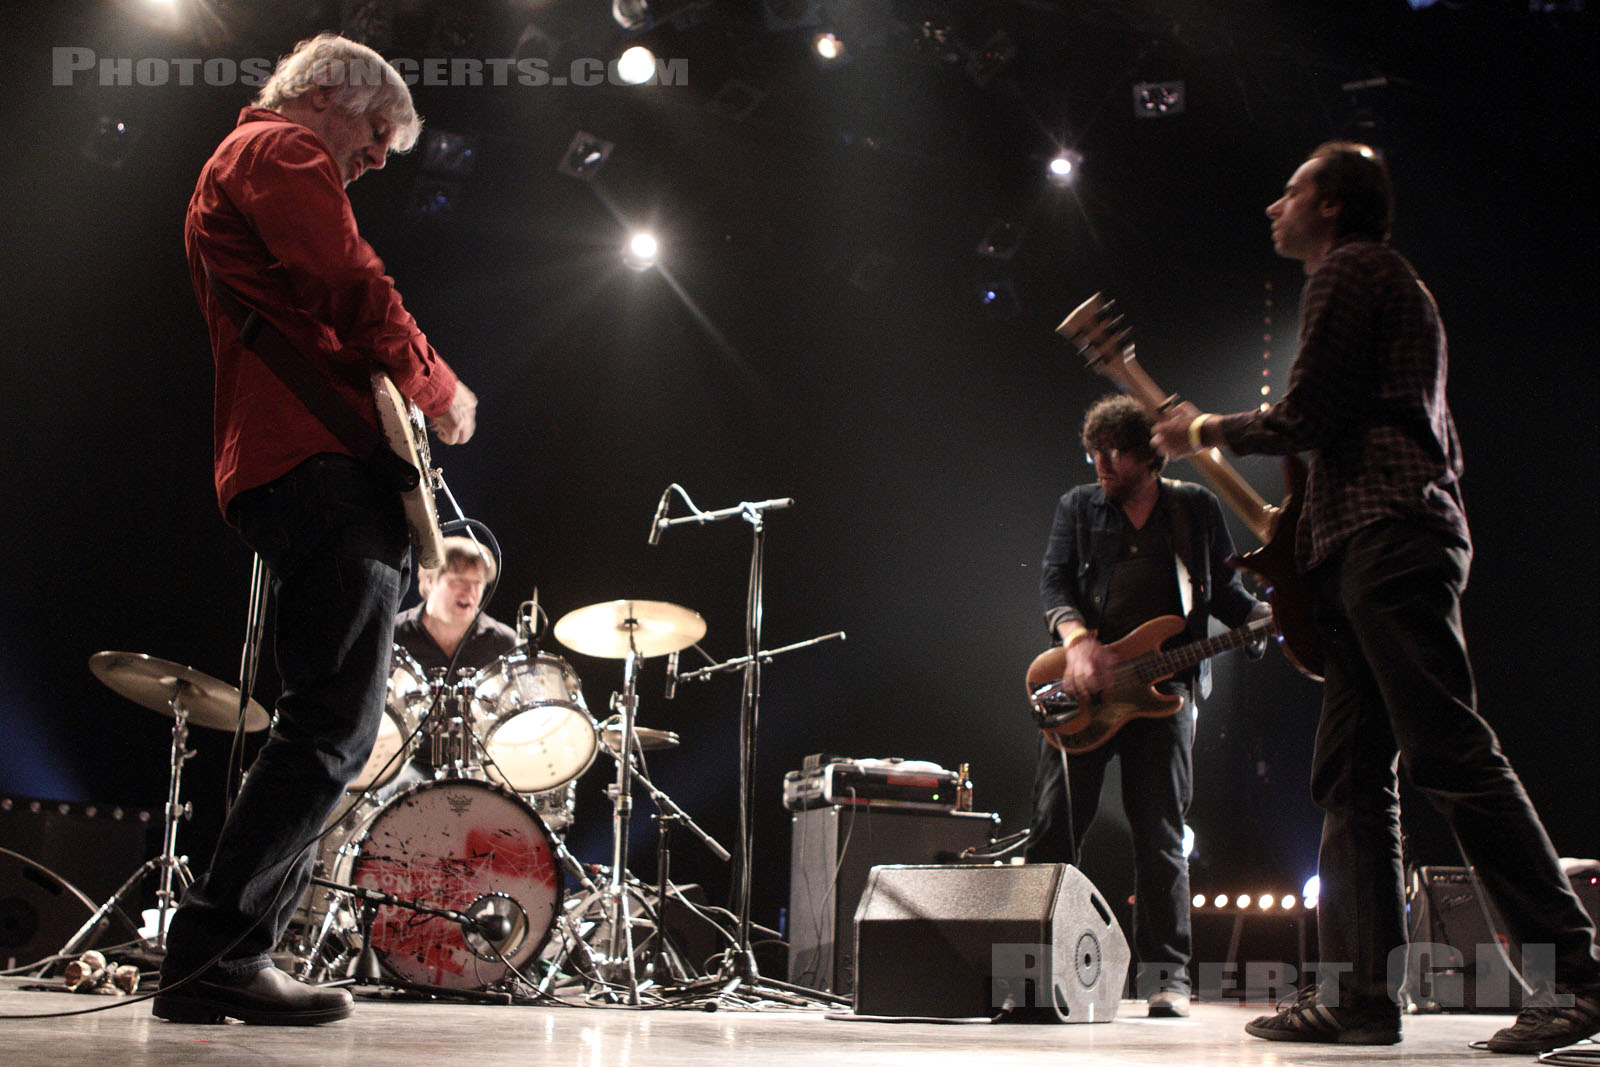 LEE RANALDO AND THE DUST - 2013-11-23 - BOULOGNE-BILLANCOURT - Carre Bellefeuille